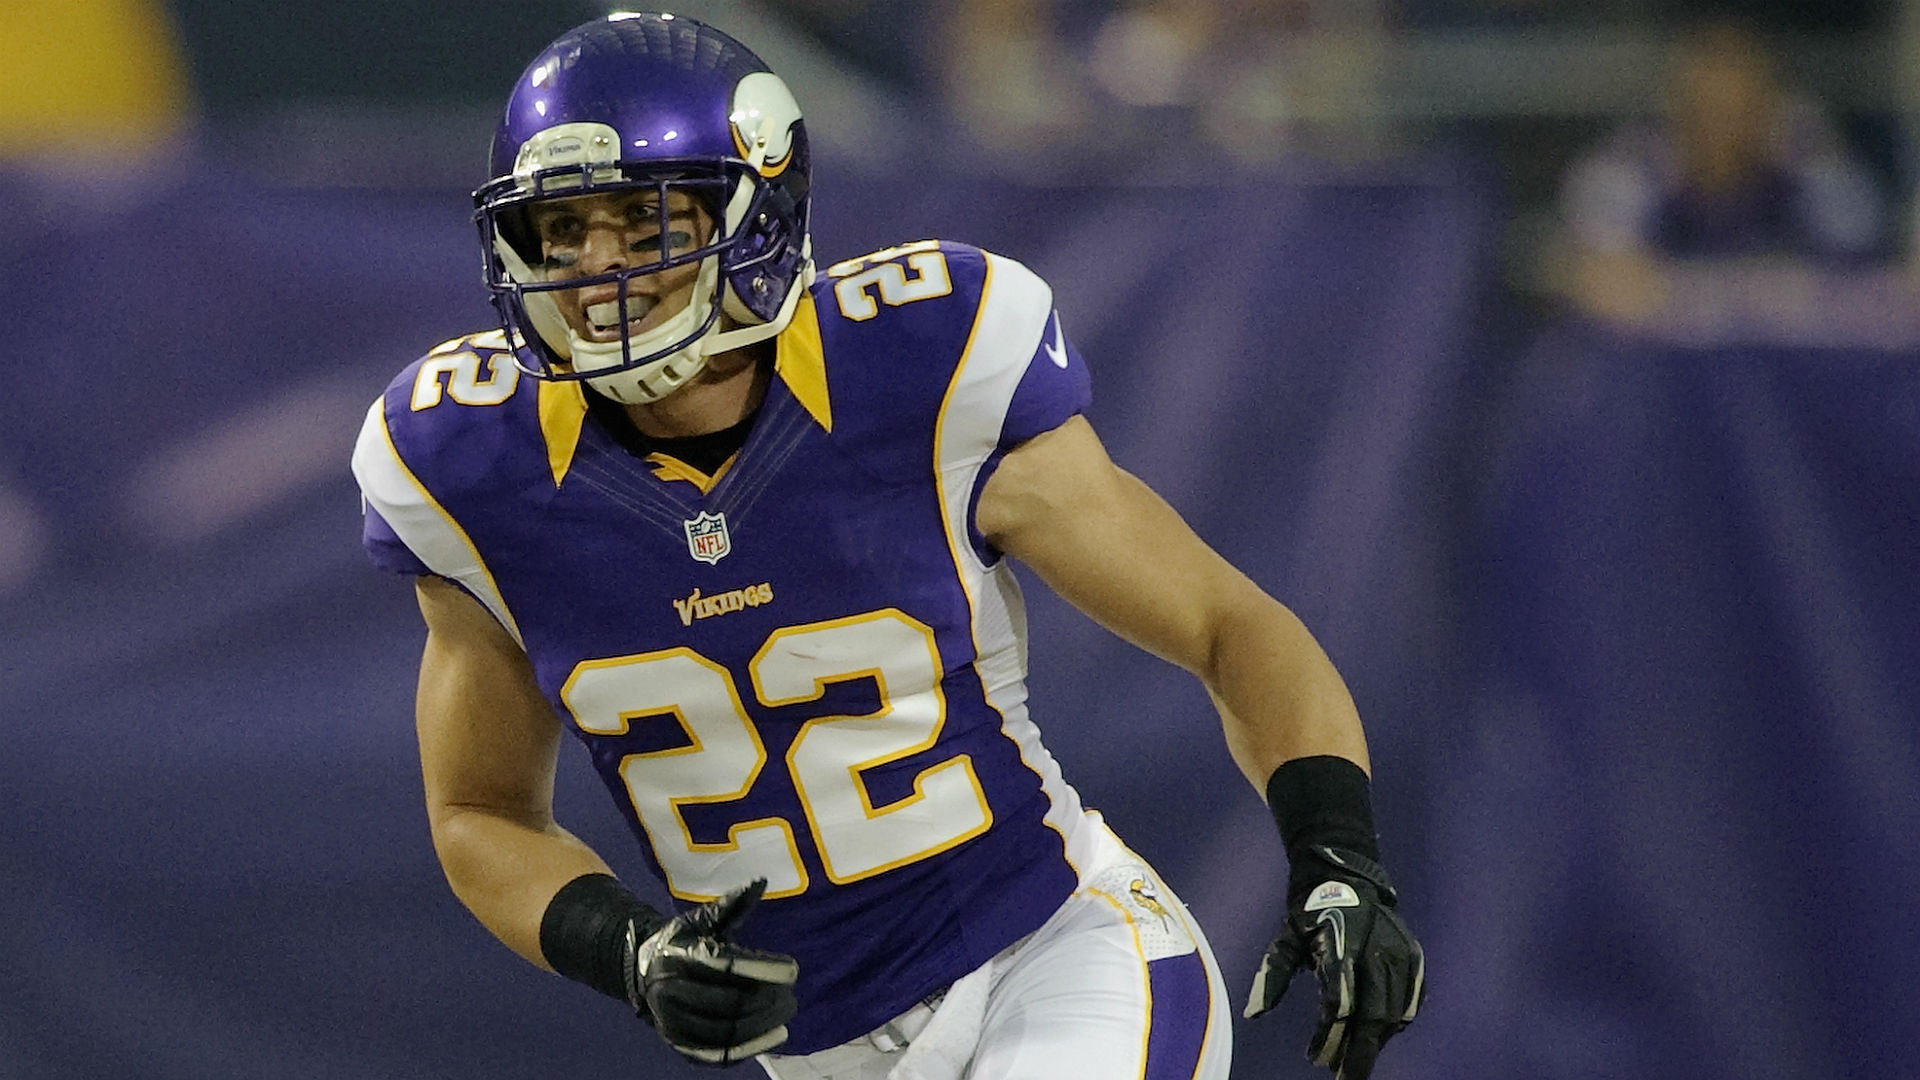 Vikings Make Harrison Smith Nfl S Highest Paid Safety According To Report Sporting News